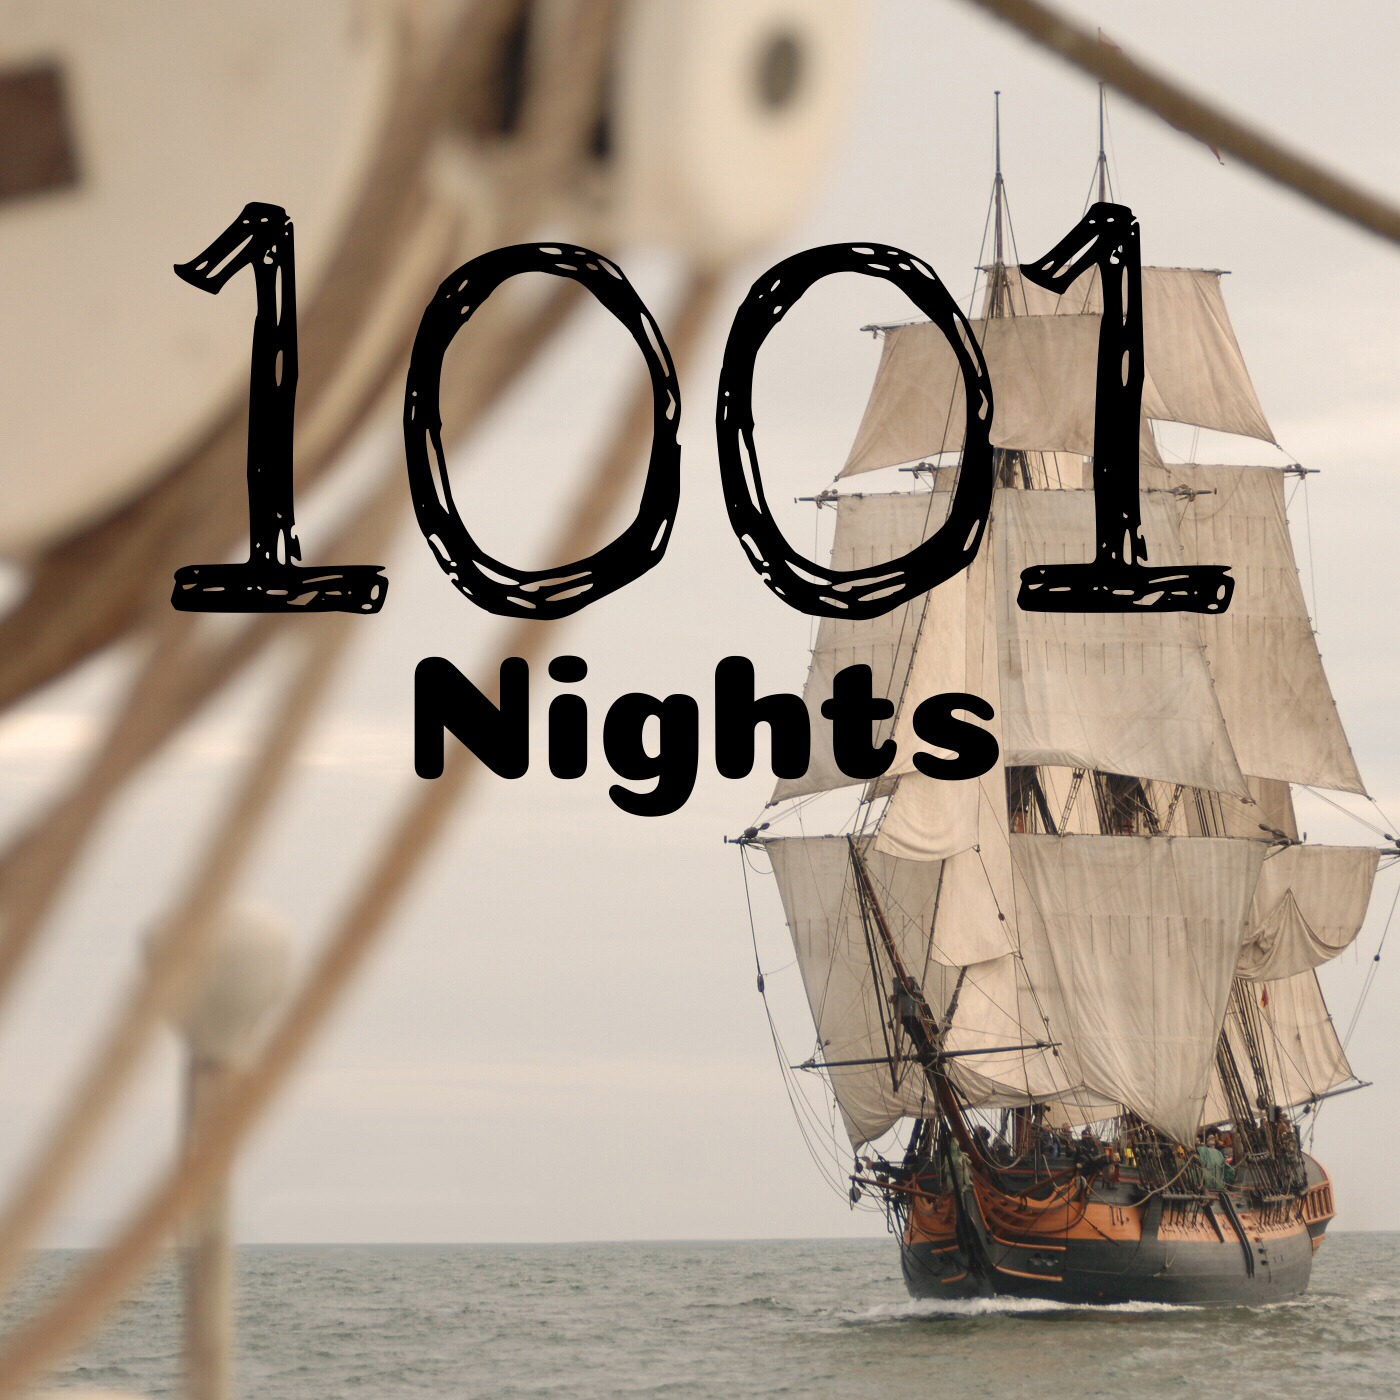 1001 Nights, Part 19 - The Sixth Voyage of Sinbad the Sailor